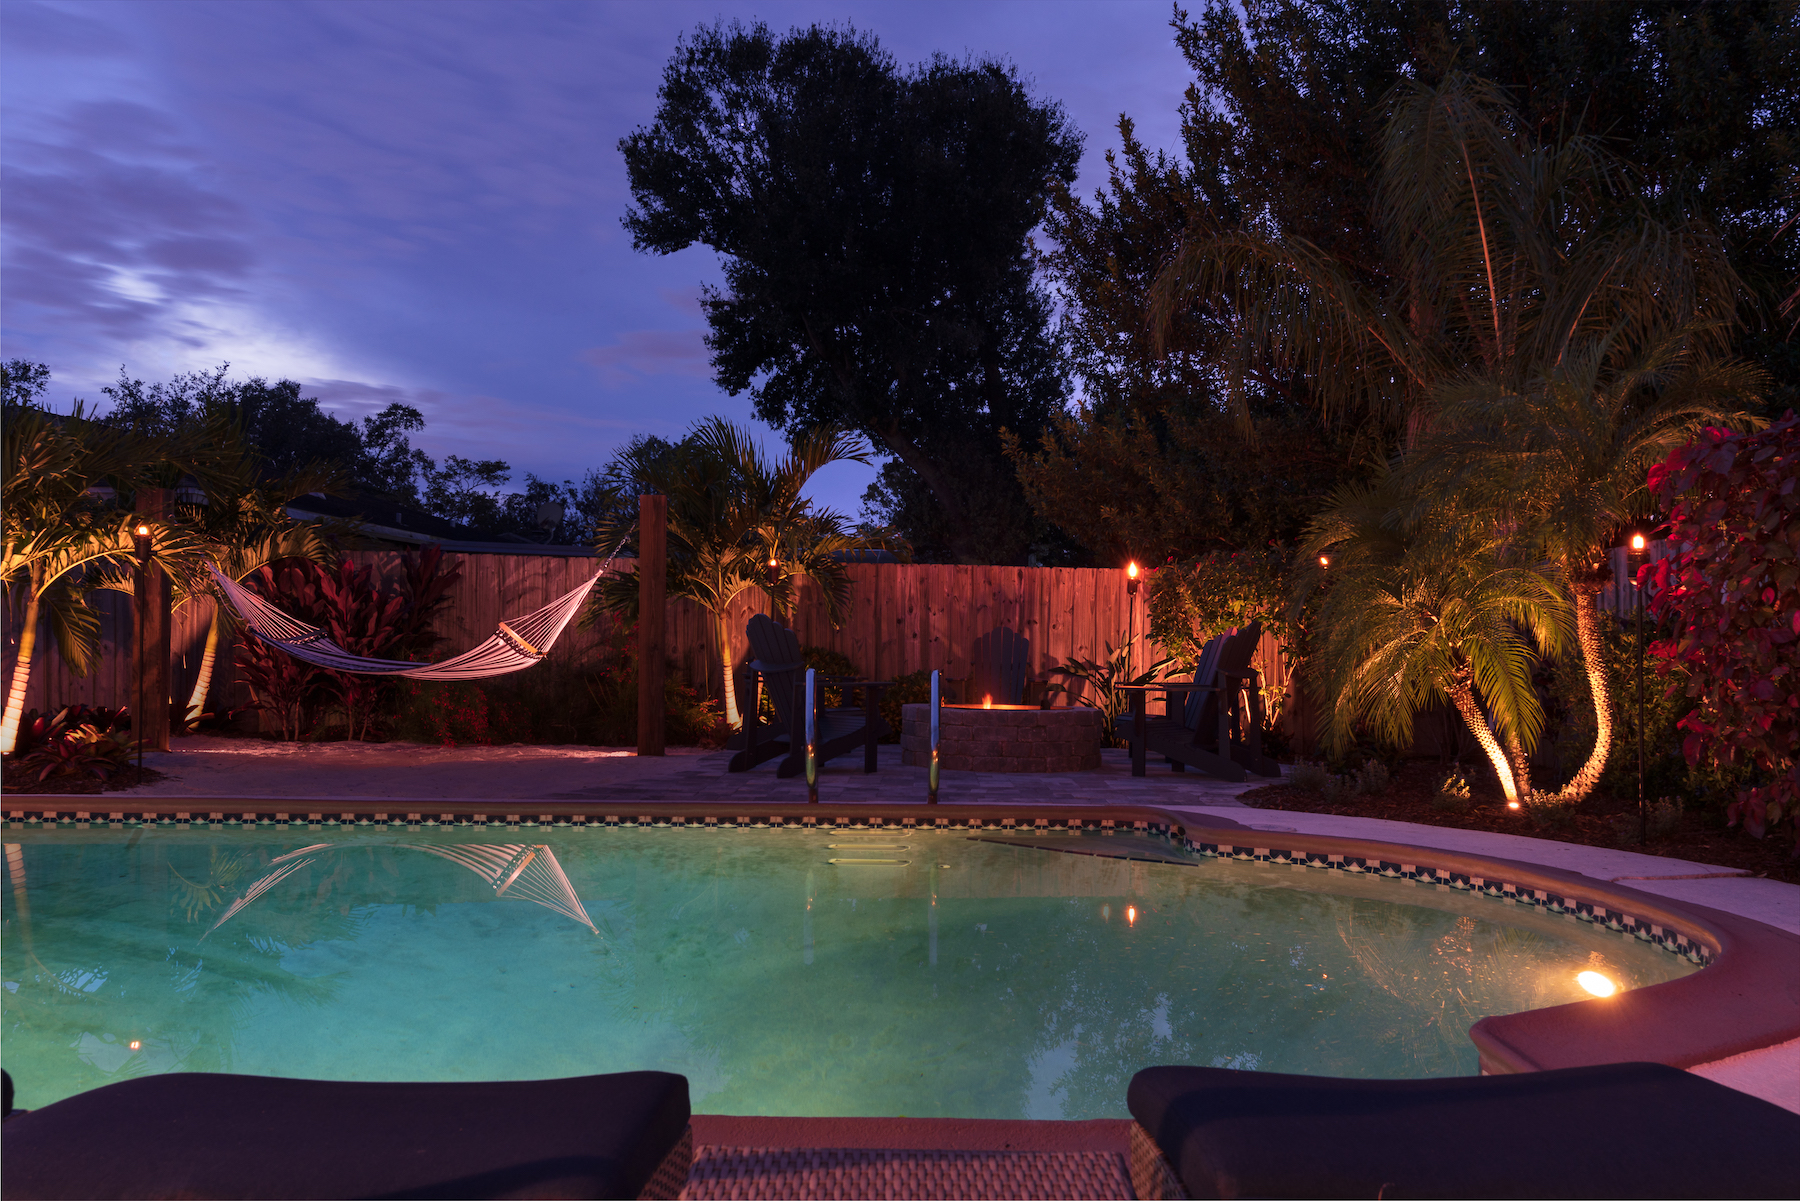 Pool patio with firepit and beach area